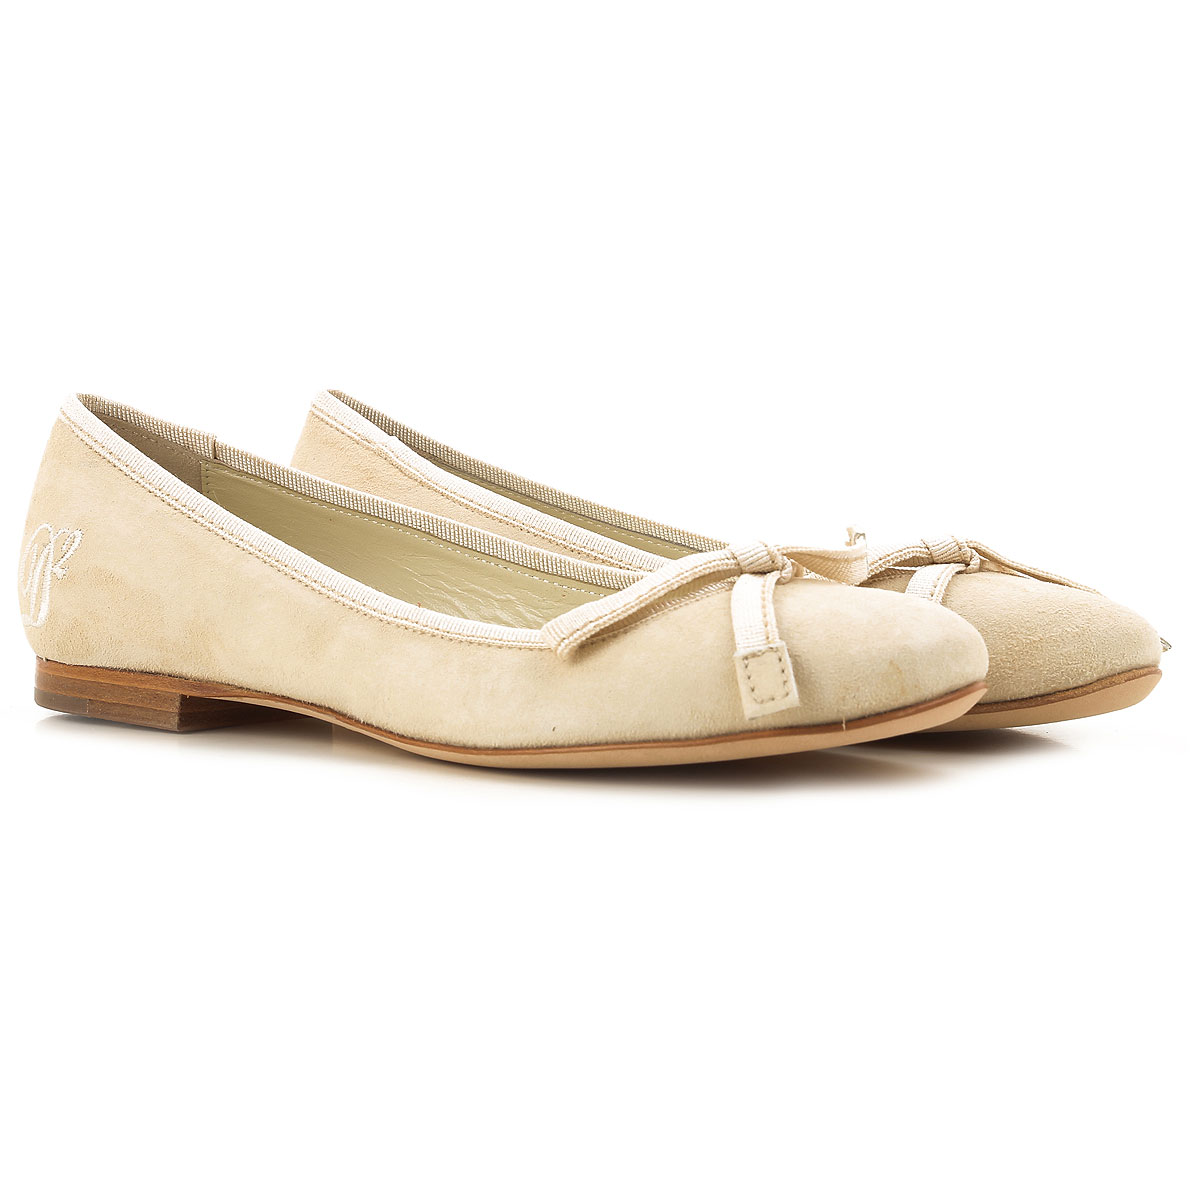 Dsquared2 Ballet Flats Ballerina Shoes for Women in Outlet Natural USA - GOOFASH